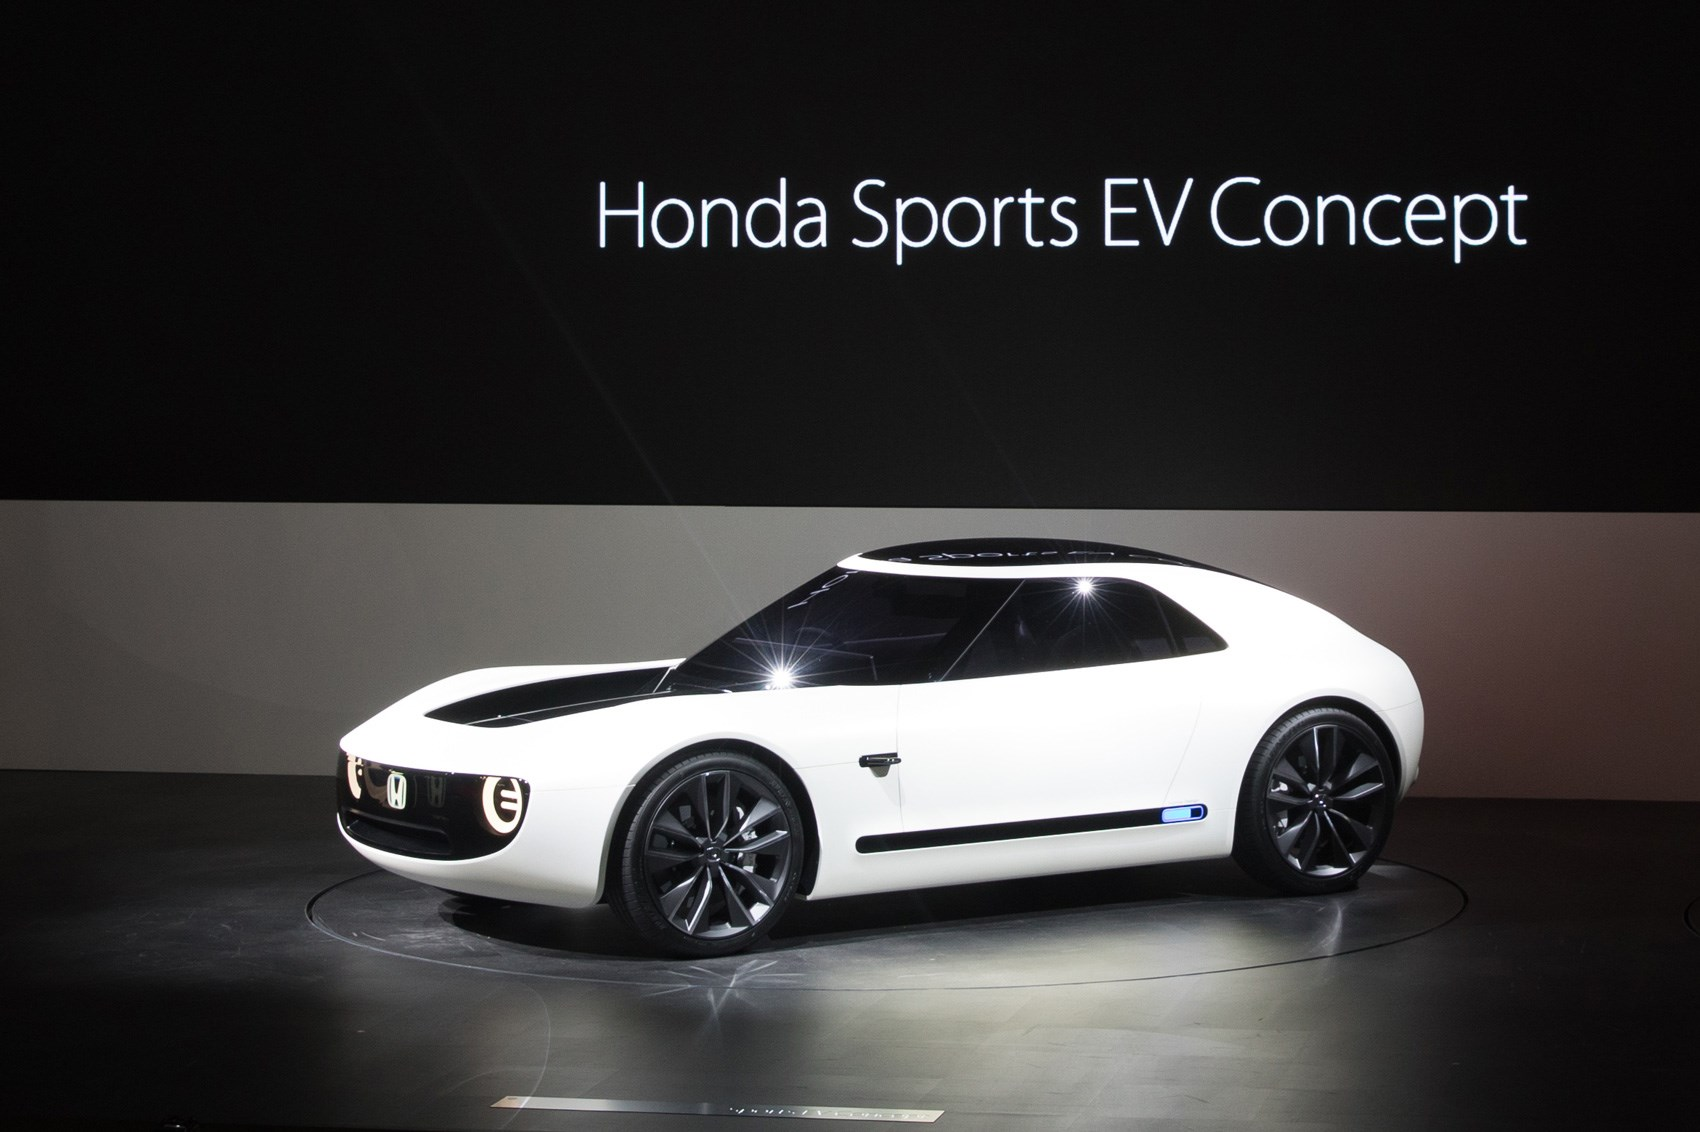 Ordinaire Honda Sports EV Honda Sports EV Honda Sports EV